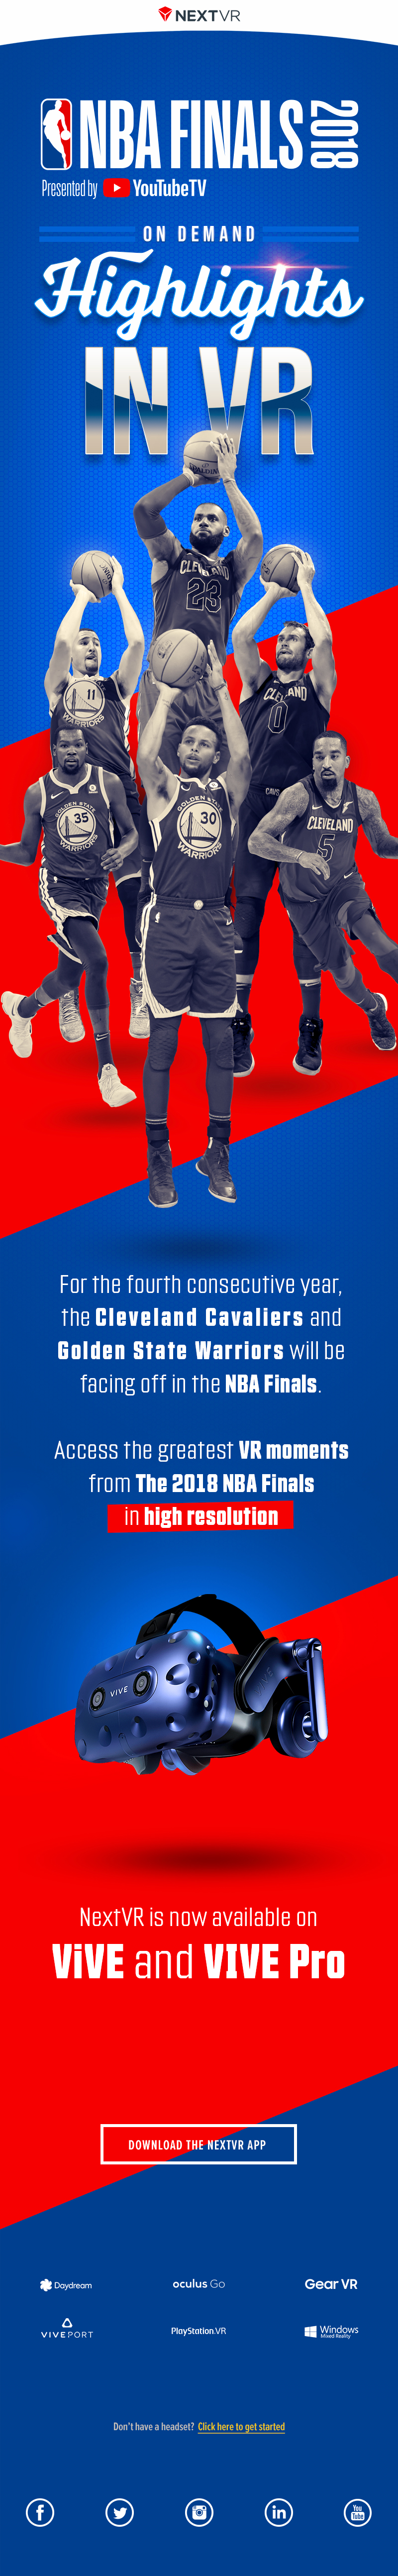 NBA VR Finals Graphic Email